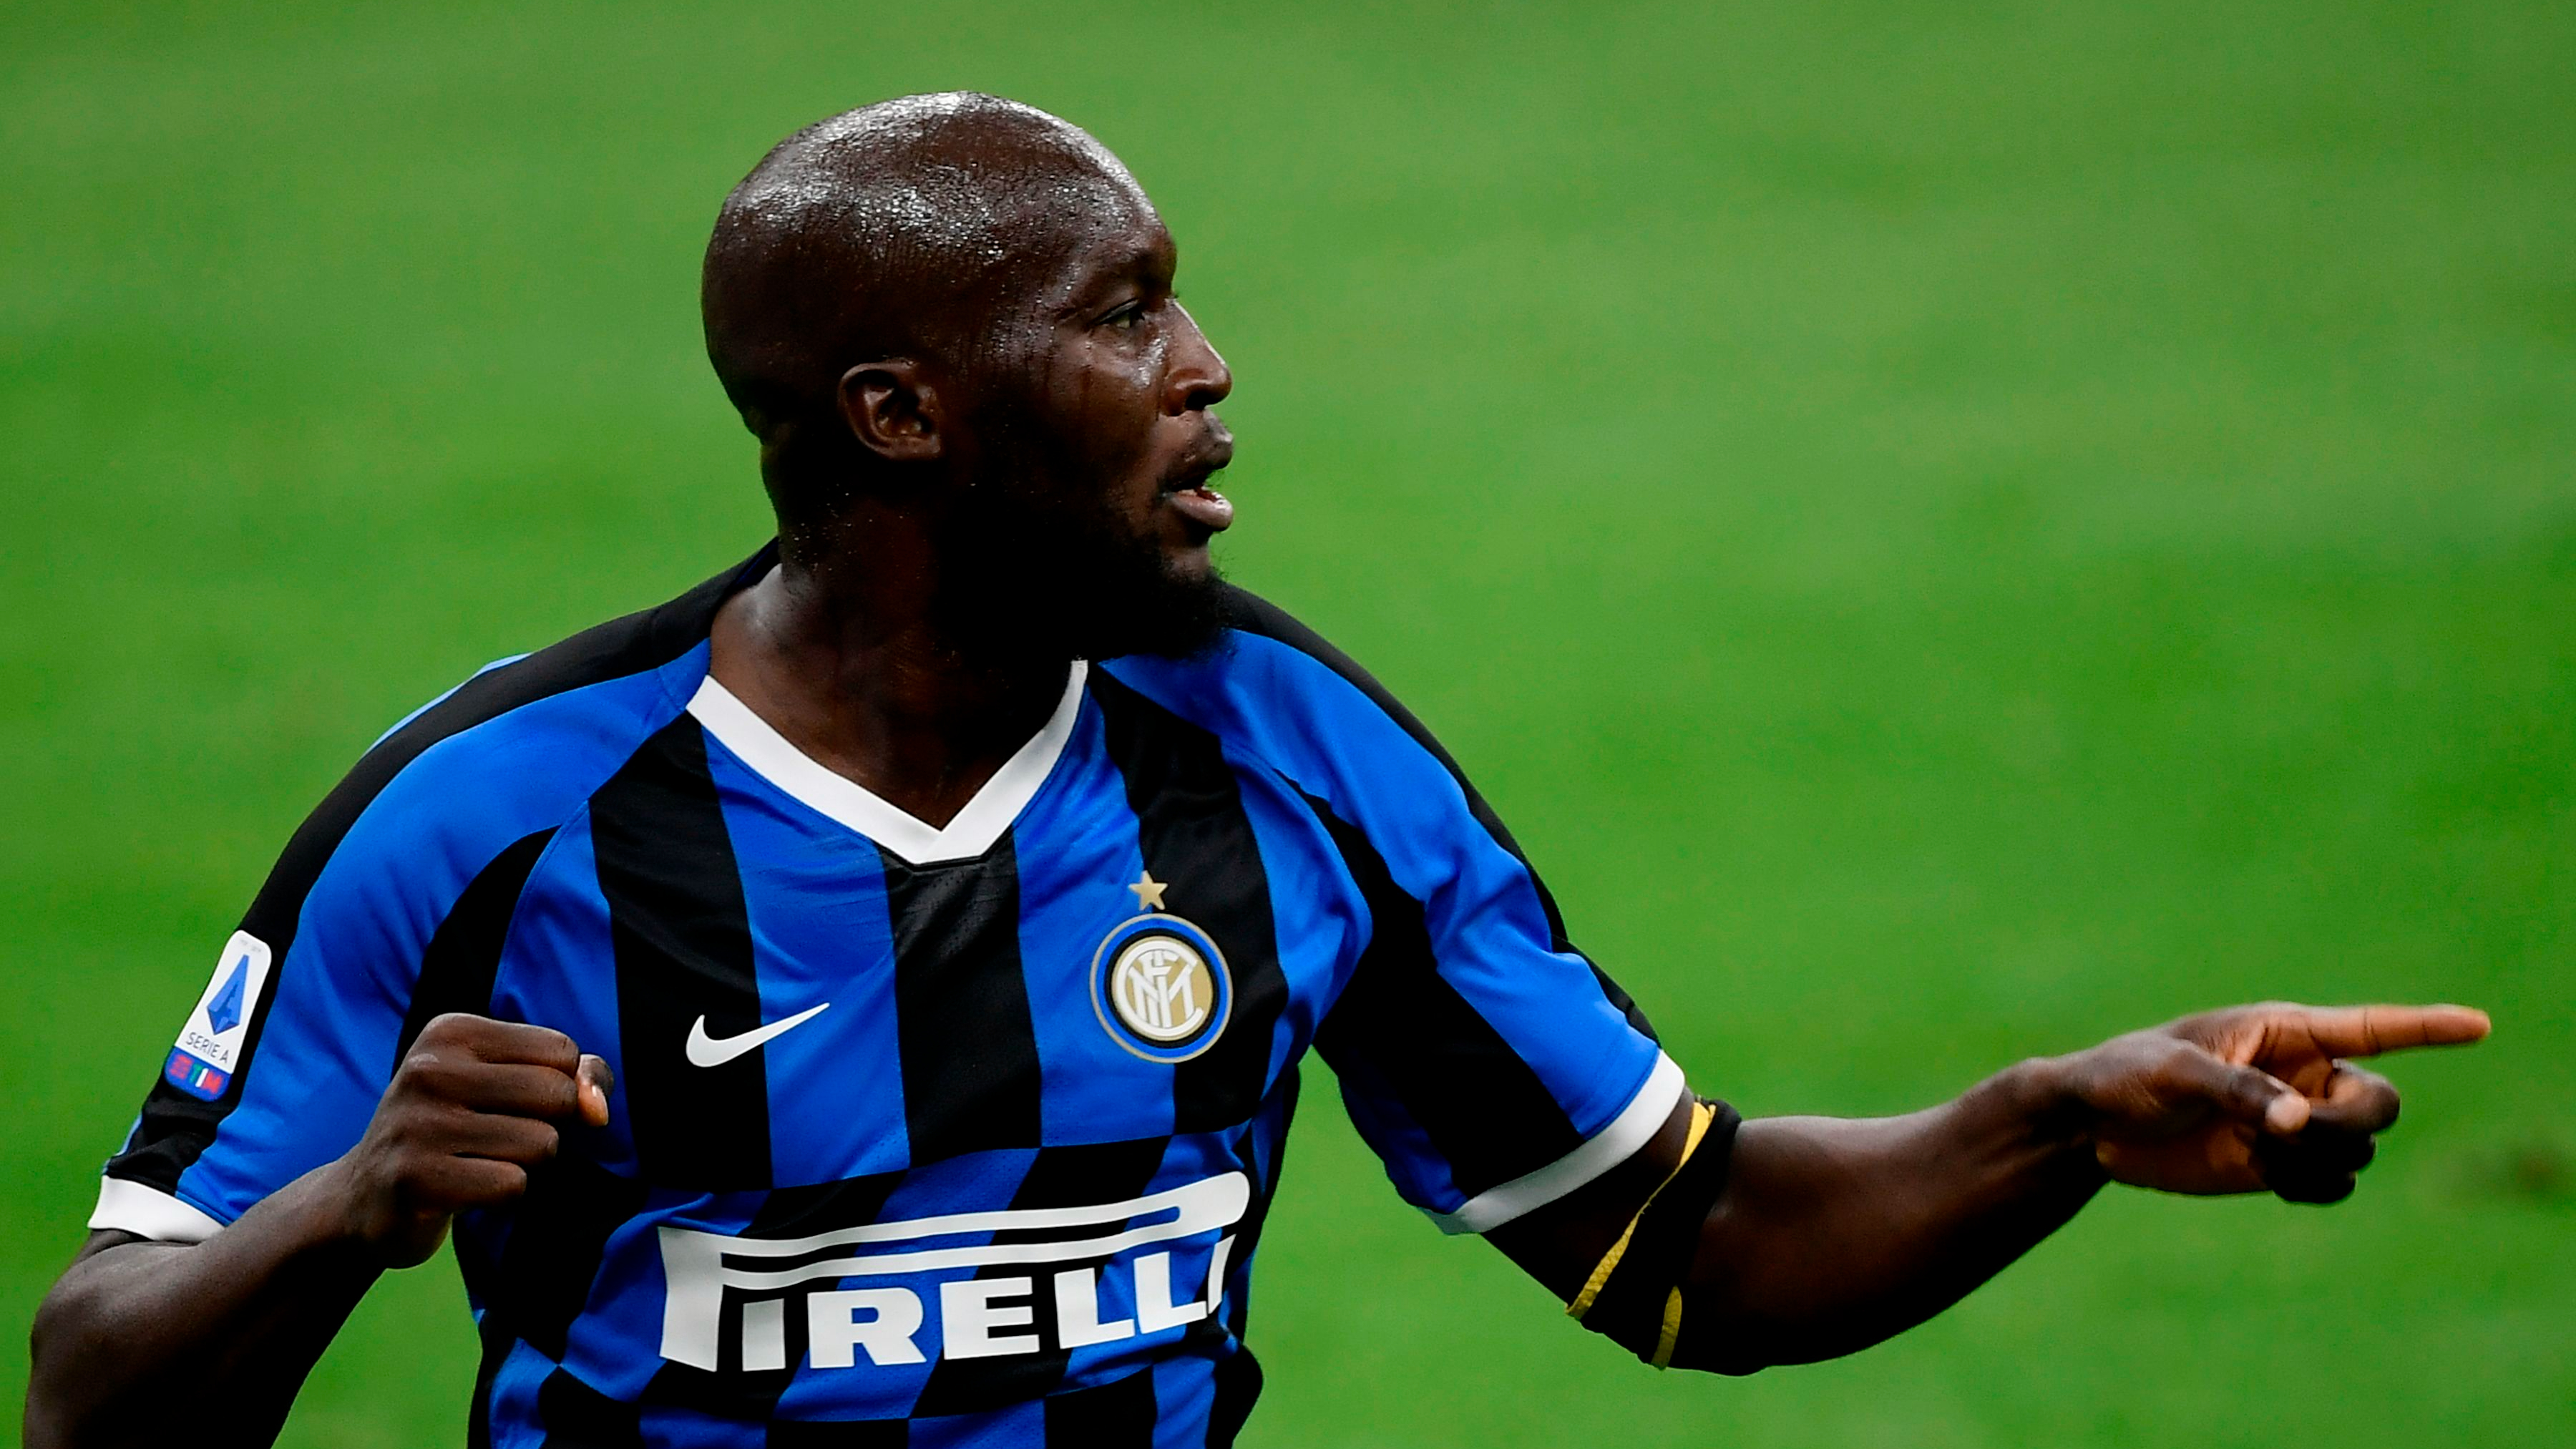 'Lukaku cost the same as all of Getafe!' - Bordalas rues missed chances in Inter defeat